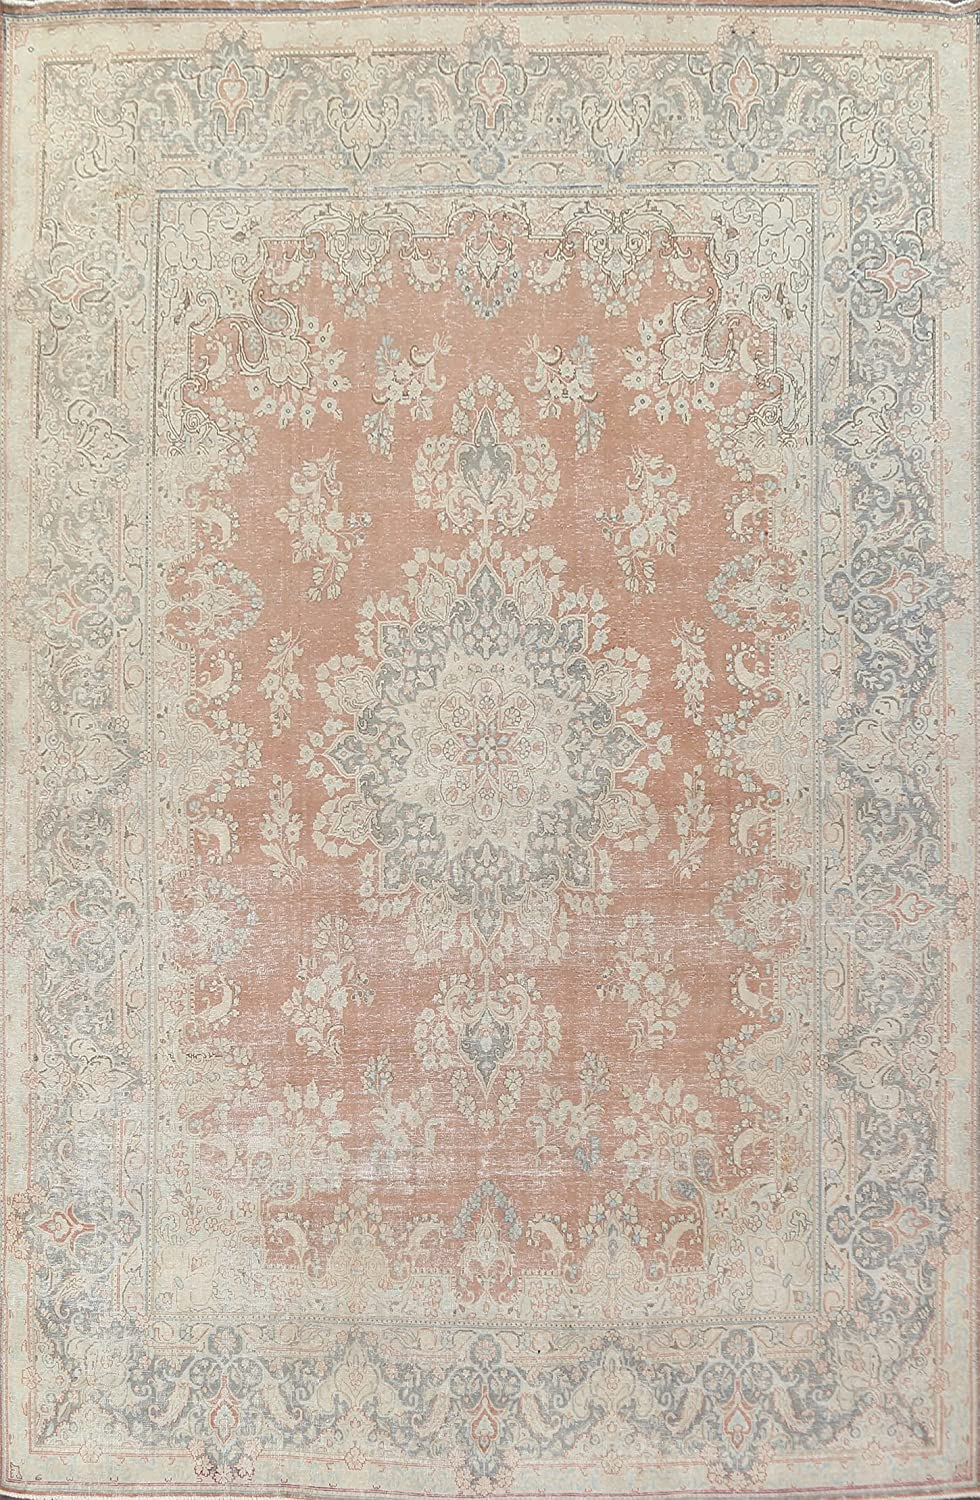 Distressed Year-end gift Floral Kirman Oriental Area Hand-Knotted Wool Rug Jacksonville Mall Car